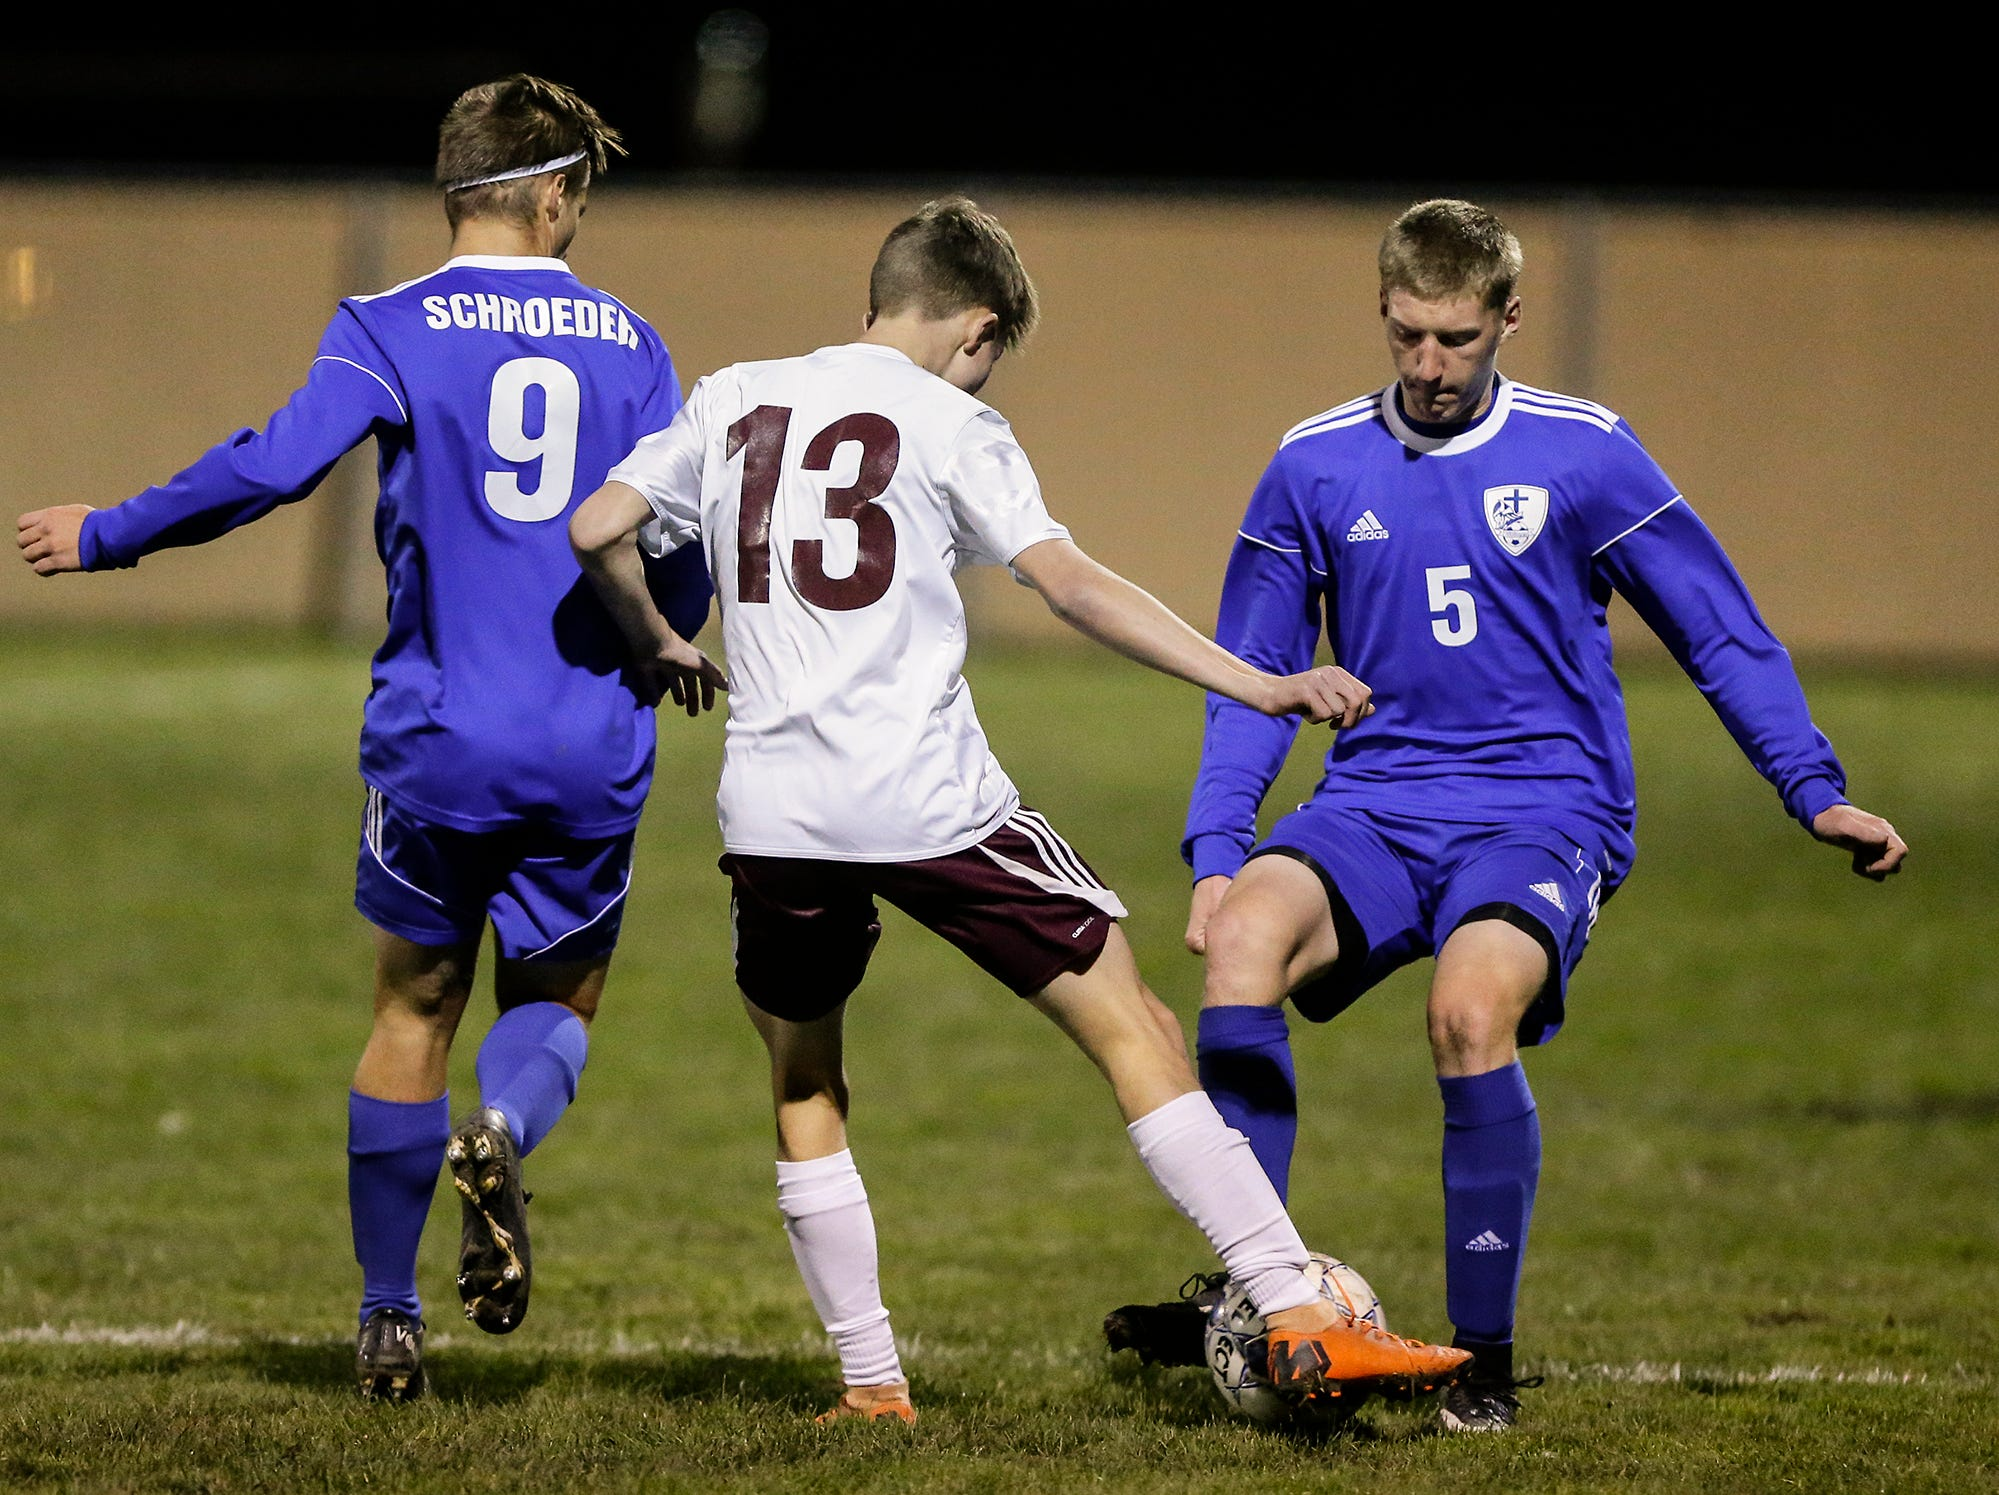 Winnebago Lutheran Academy soccer's Nathan Pausma (5) battles for the ball with an Omro High School player during their WIAA regional playoff game Thursday, October 18, 2018 in Fond du Lac, Wisconsin. Doug Raflik/USA TODAY NETWORK-Wisconsin